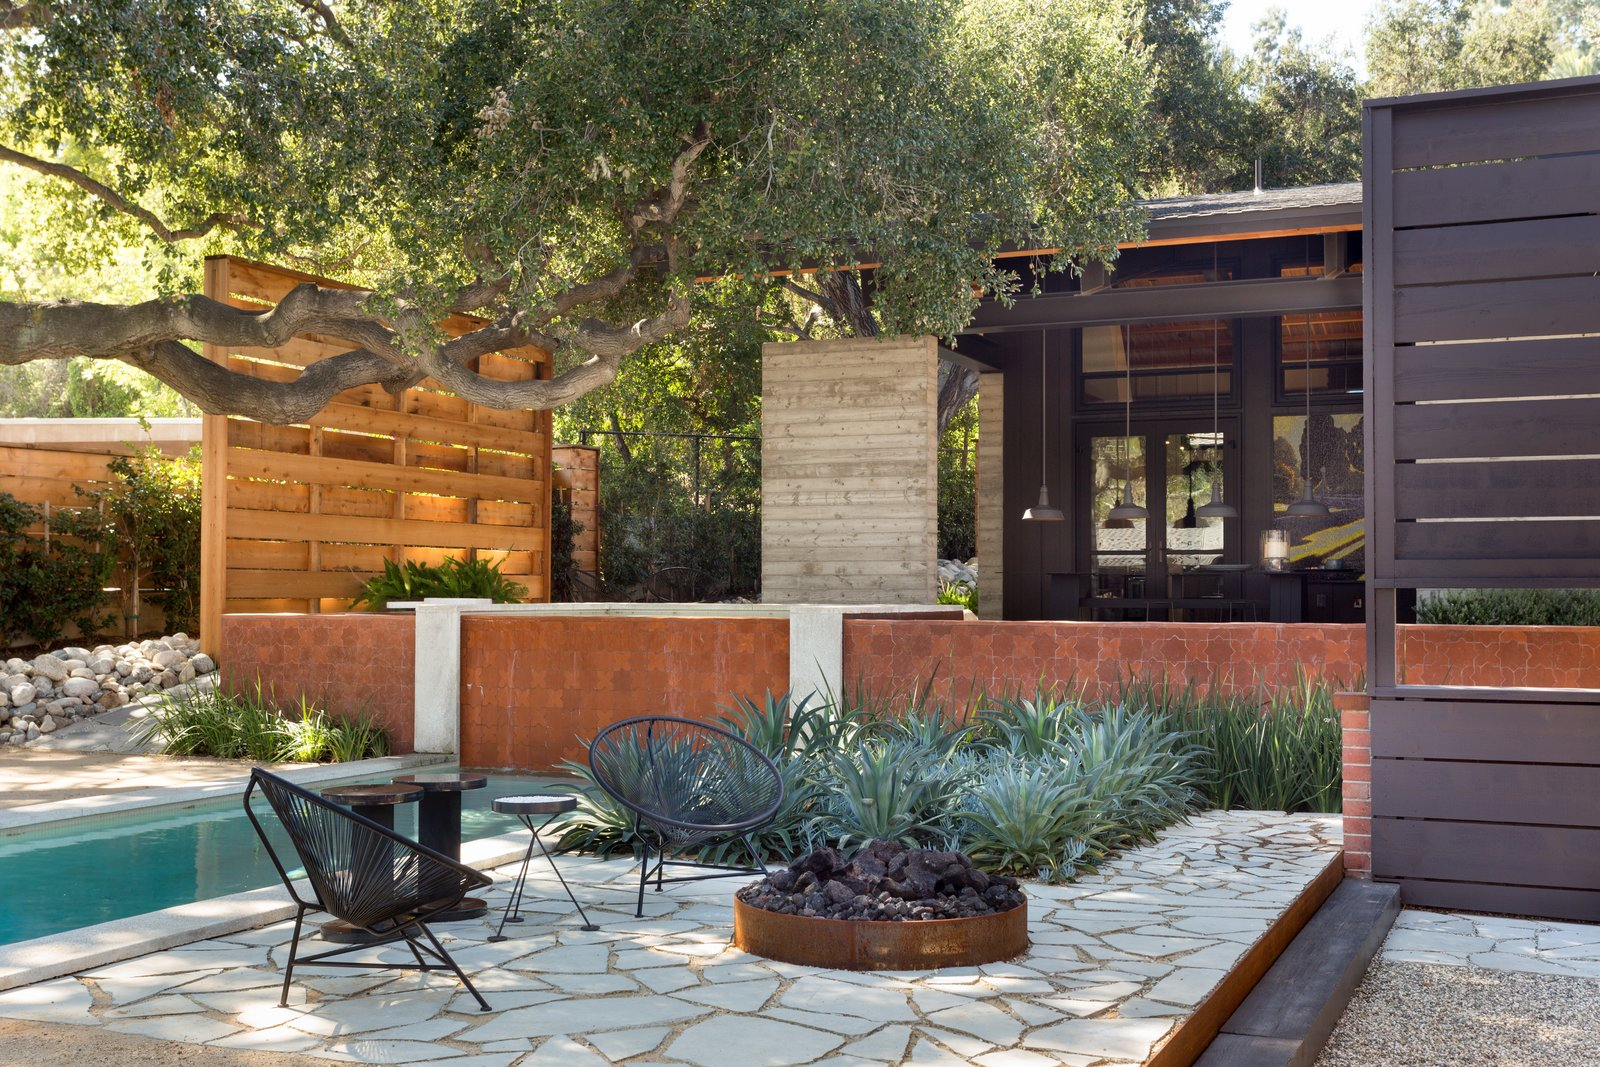 6 Backyard Landscape Designs That Need Minimal Maintenance Dwell inside 13 Genius Tricks of How to Build Landscape Designs For Backyard